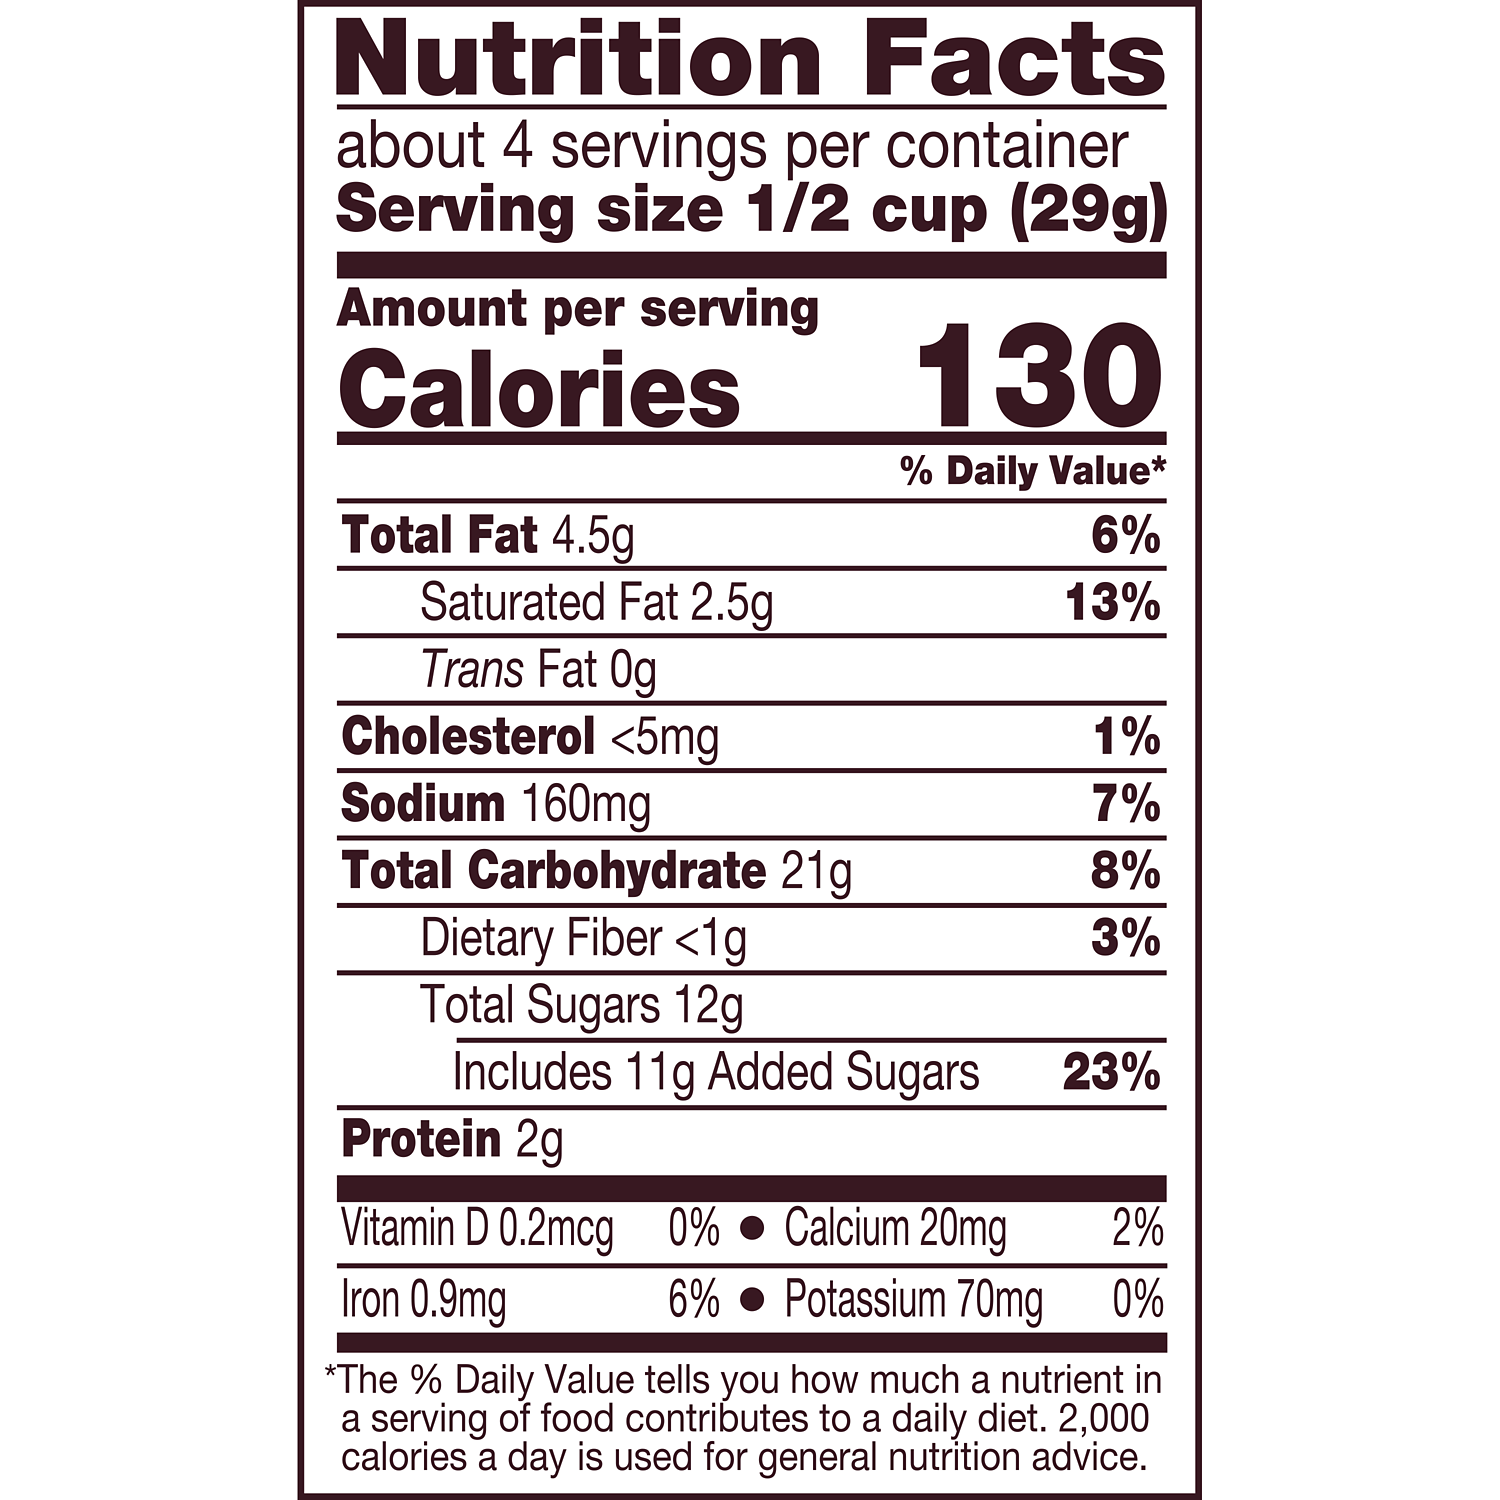 HERSHEY'S Popped Milk Chocolate Snack Mix, 4 oz bag - Nutritional Facts